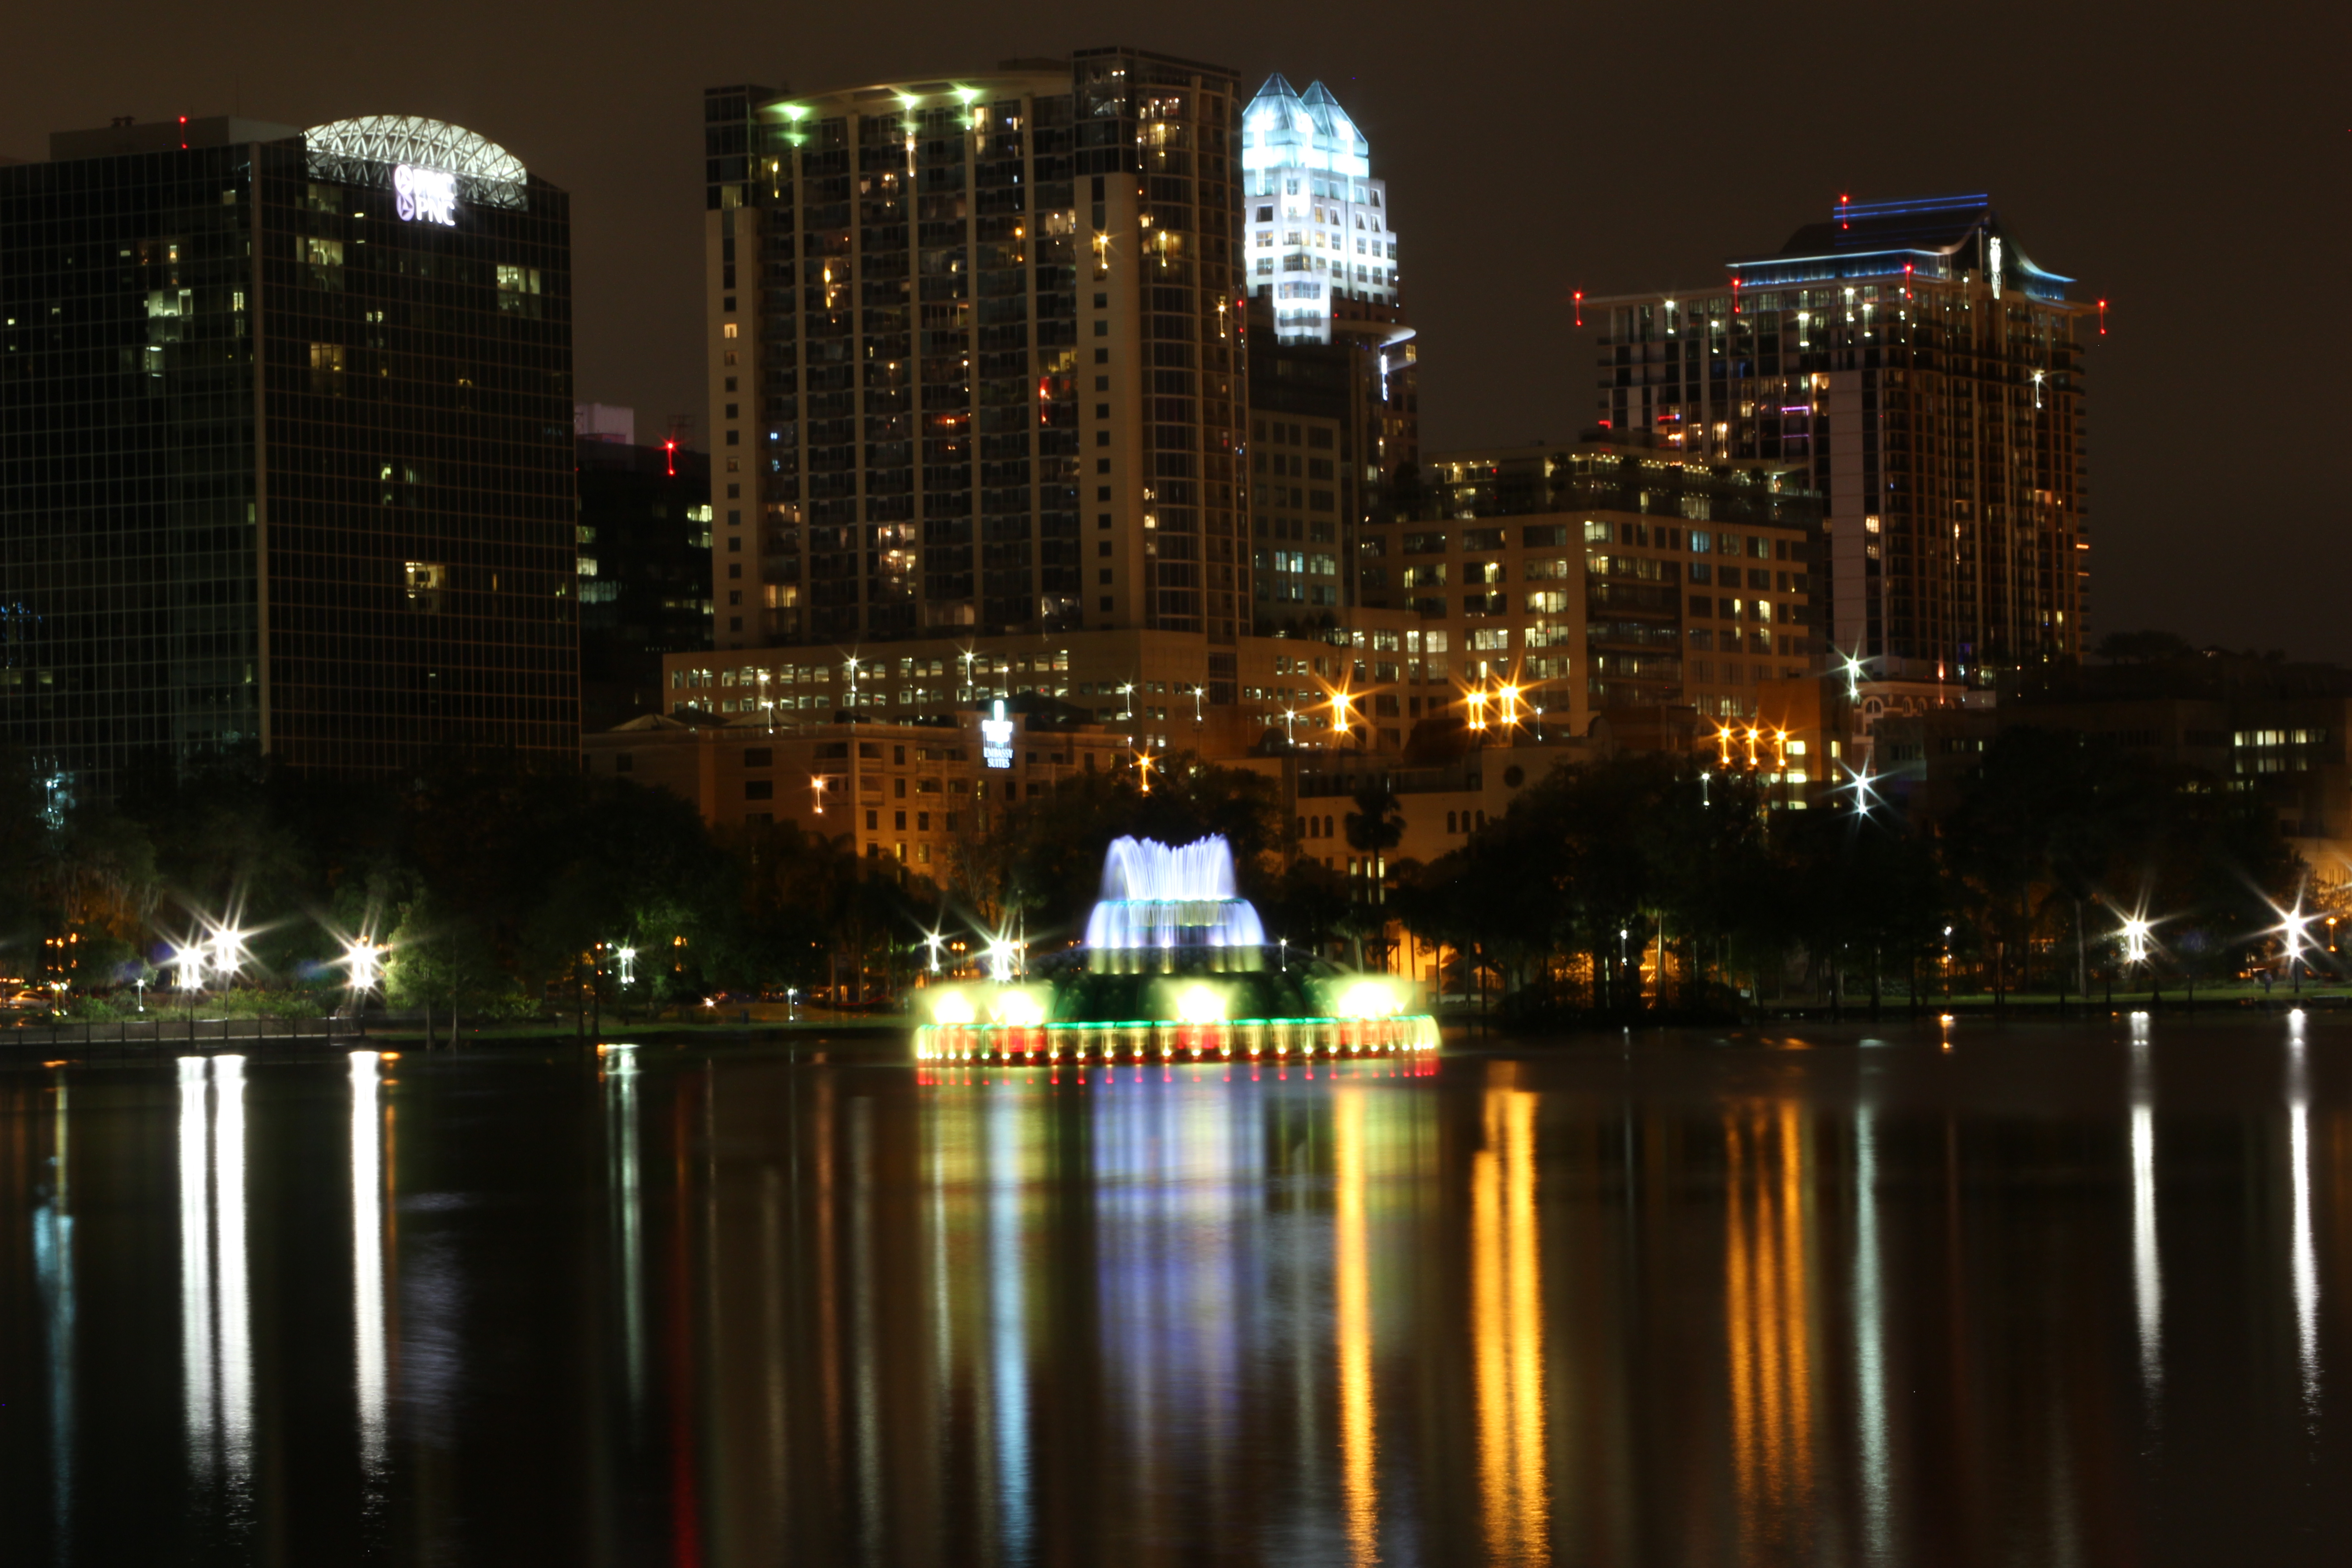 Photograph of the Lake Eola fountain with the Orlando skyline in the background, at night